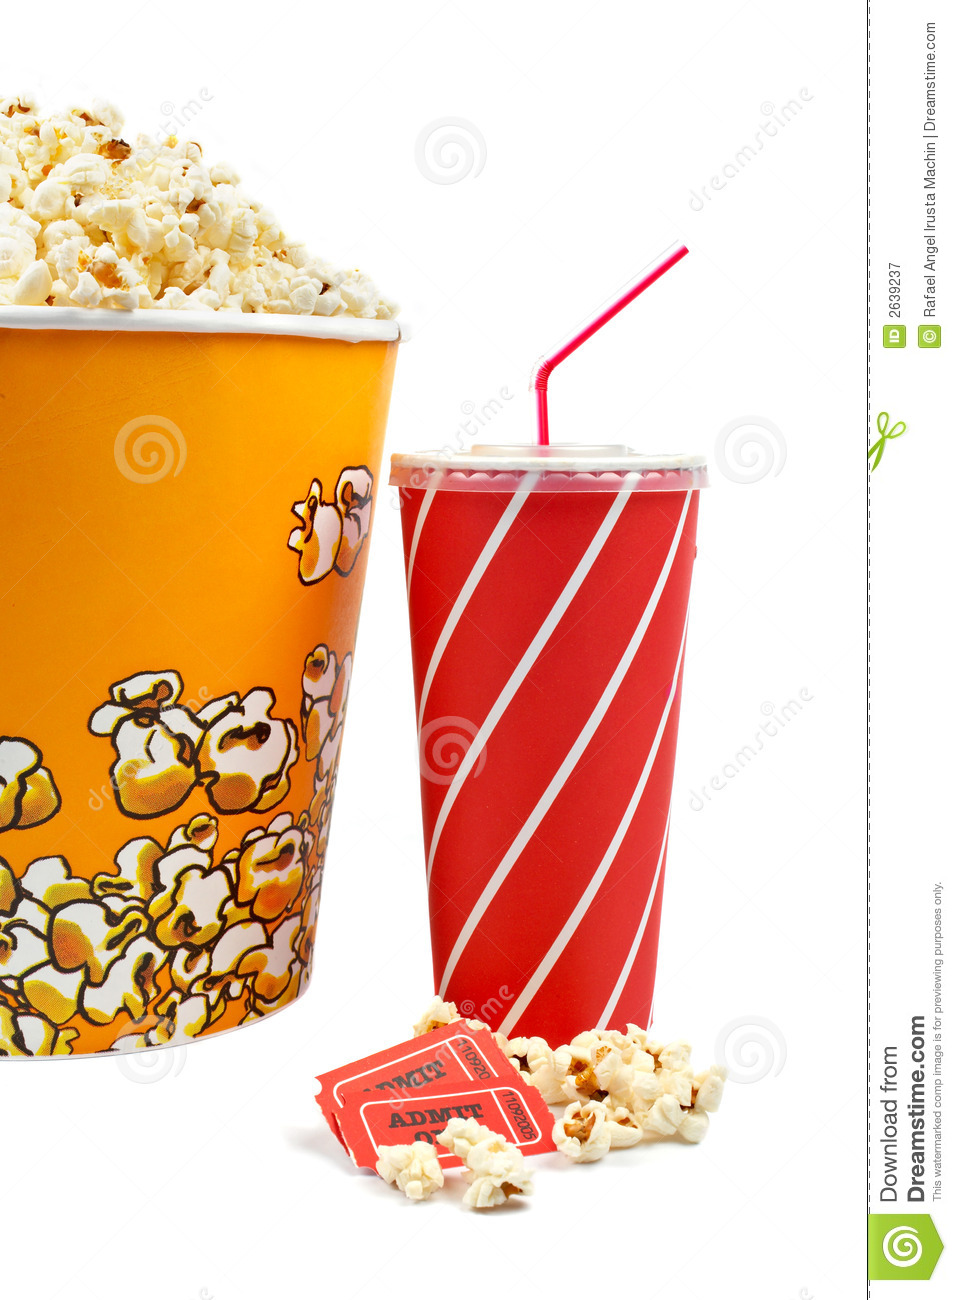 Image Gallery movie popcorn and soda